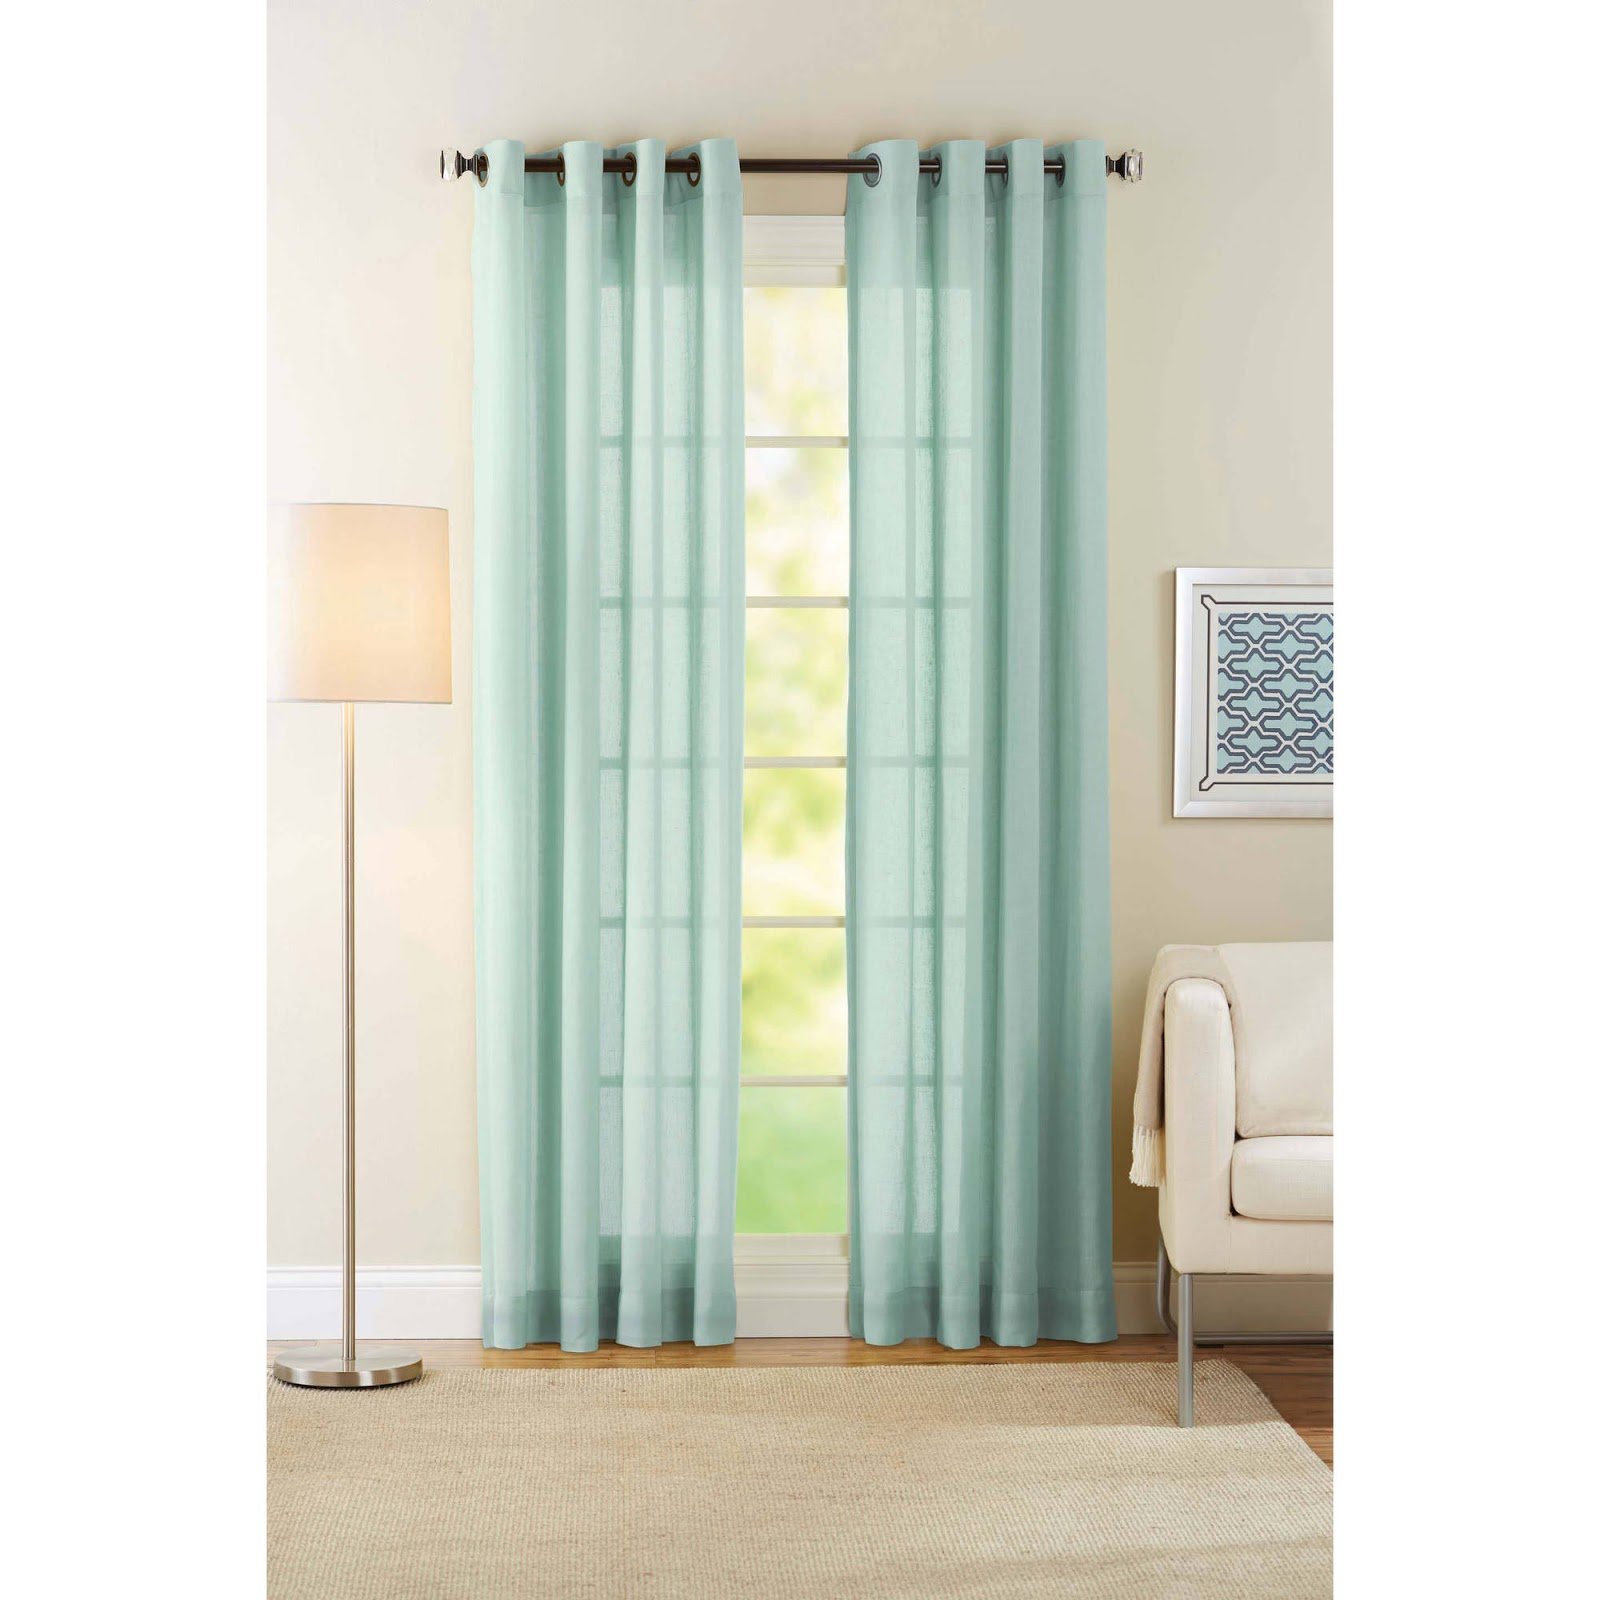 Curtains To Hide Washer And Dryer Make Room Dark Match Blue Walls Measure